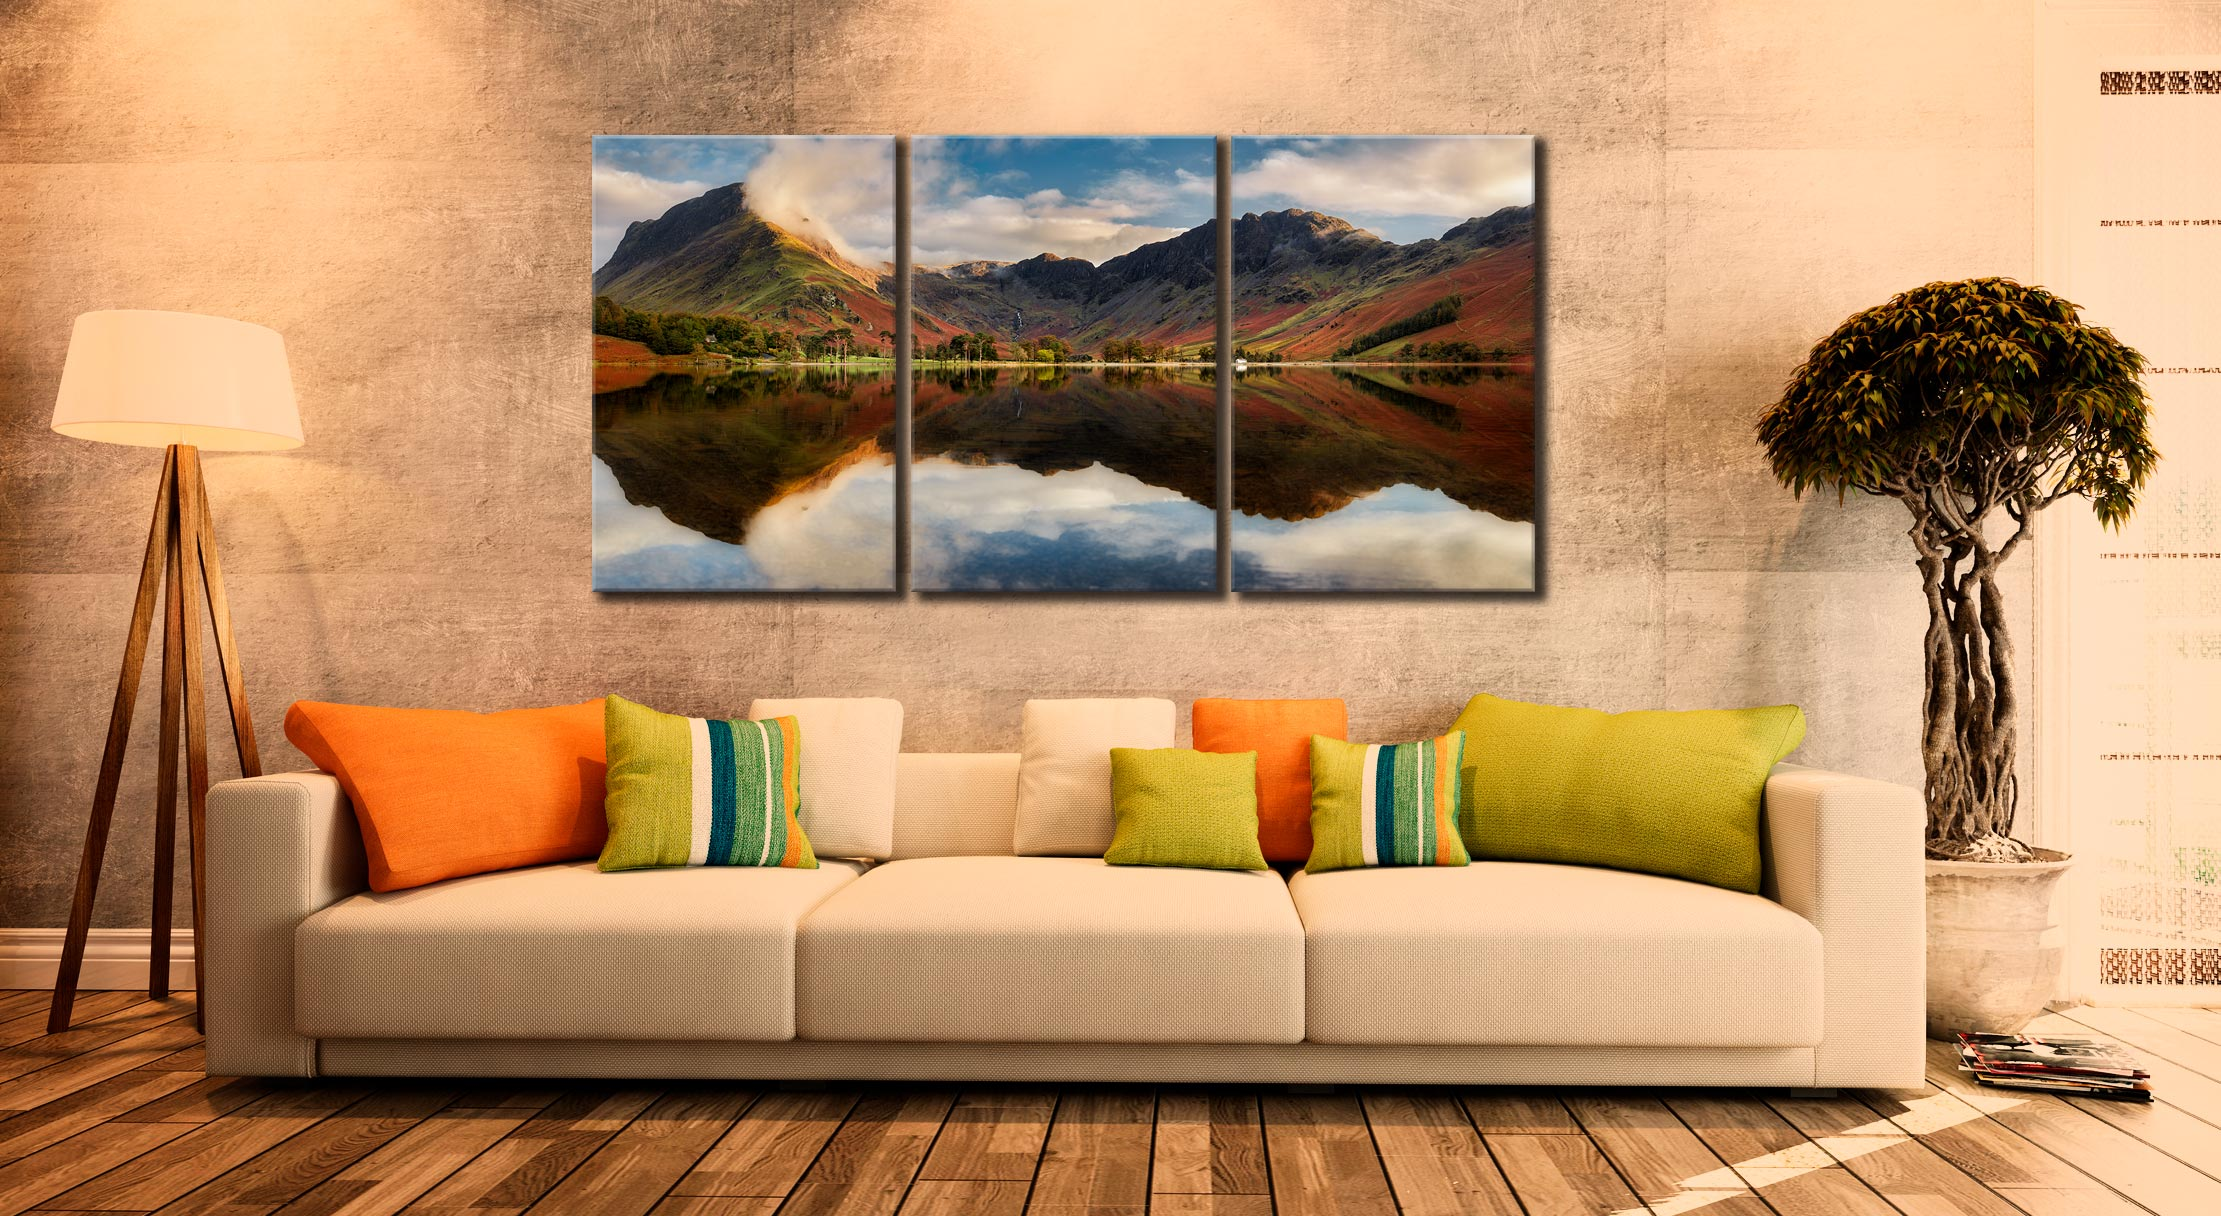 Buttermere Evening Light - 3 Panel Canvas on Wall